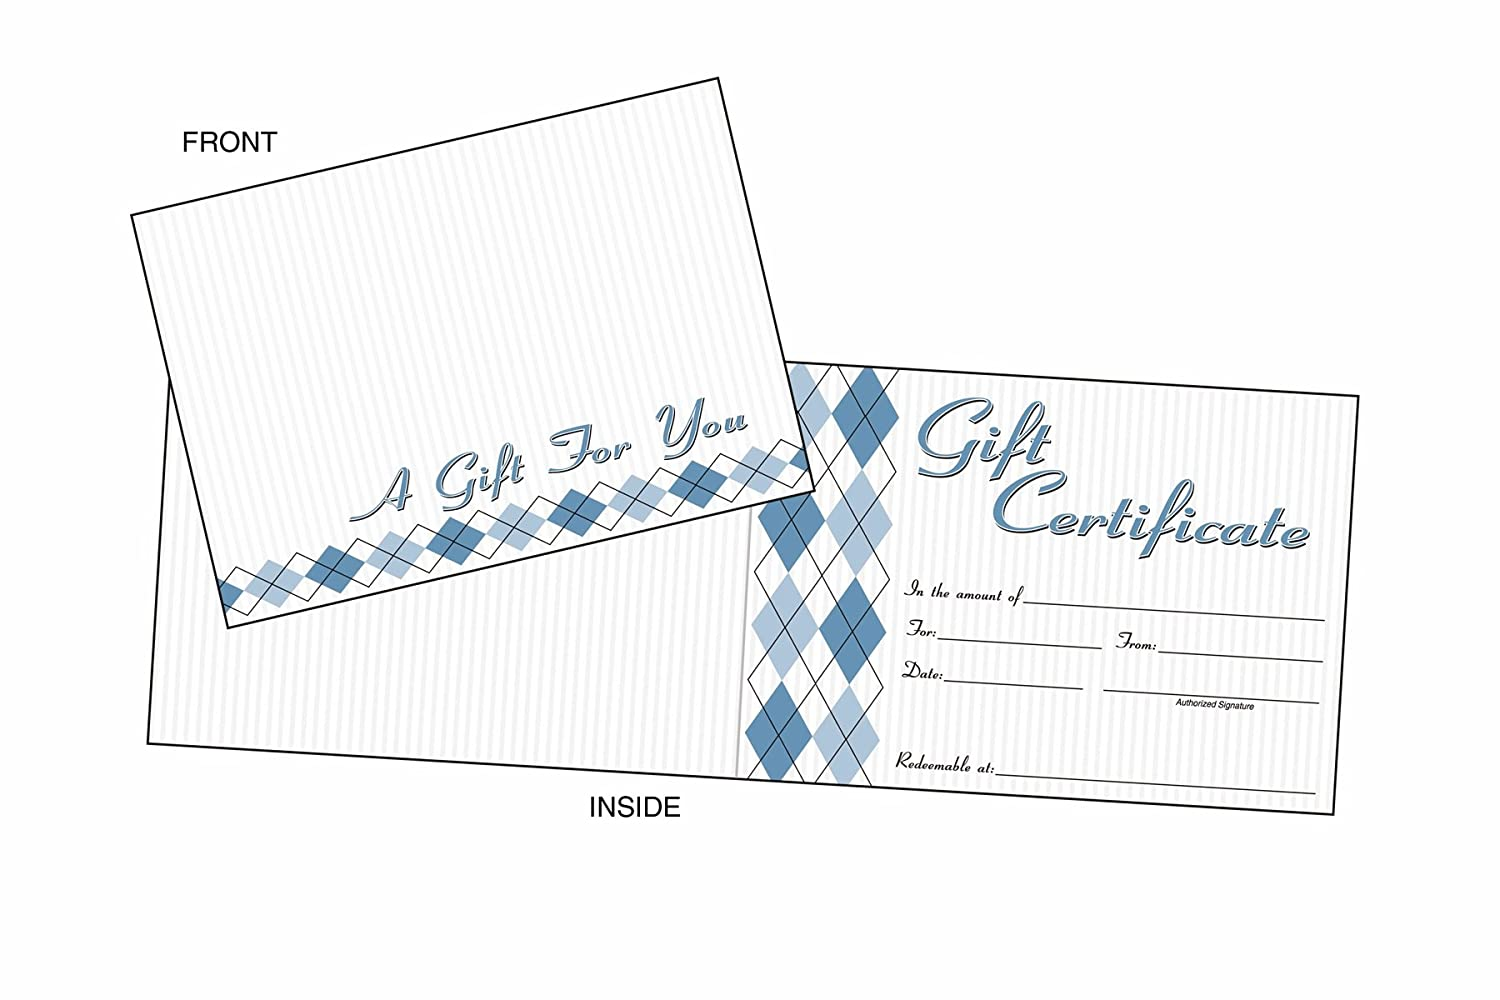 awards certificates amazon com office school supplies adams gift certificate cards 20 folded cards and envelopes 6 25 x 4 50 inches white gftcrd